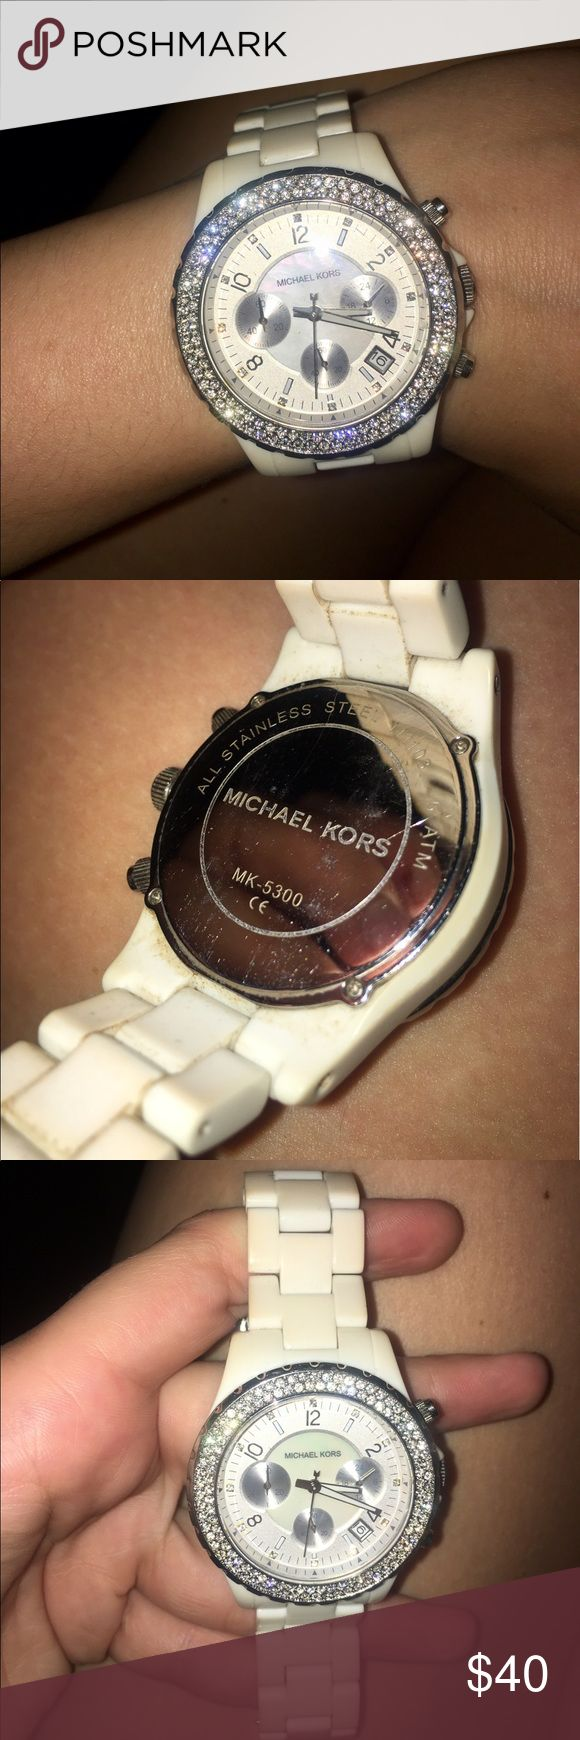 Off white michael kors watch This watch band seems to look ivory now it needs a good cleaning! No missing stones! Stones still shine nice. Battery is dead. No box. No additional links. MICHAEL Michael Kors Accessories Watches